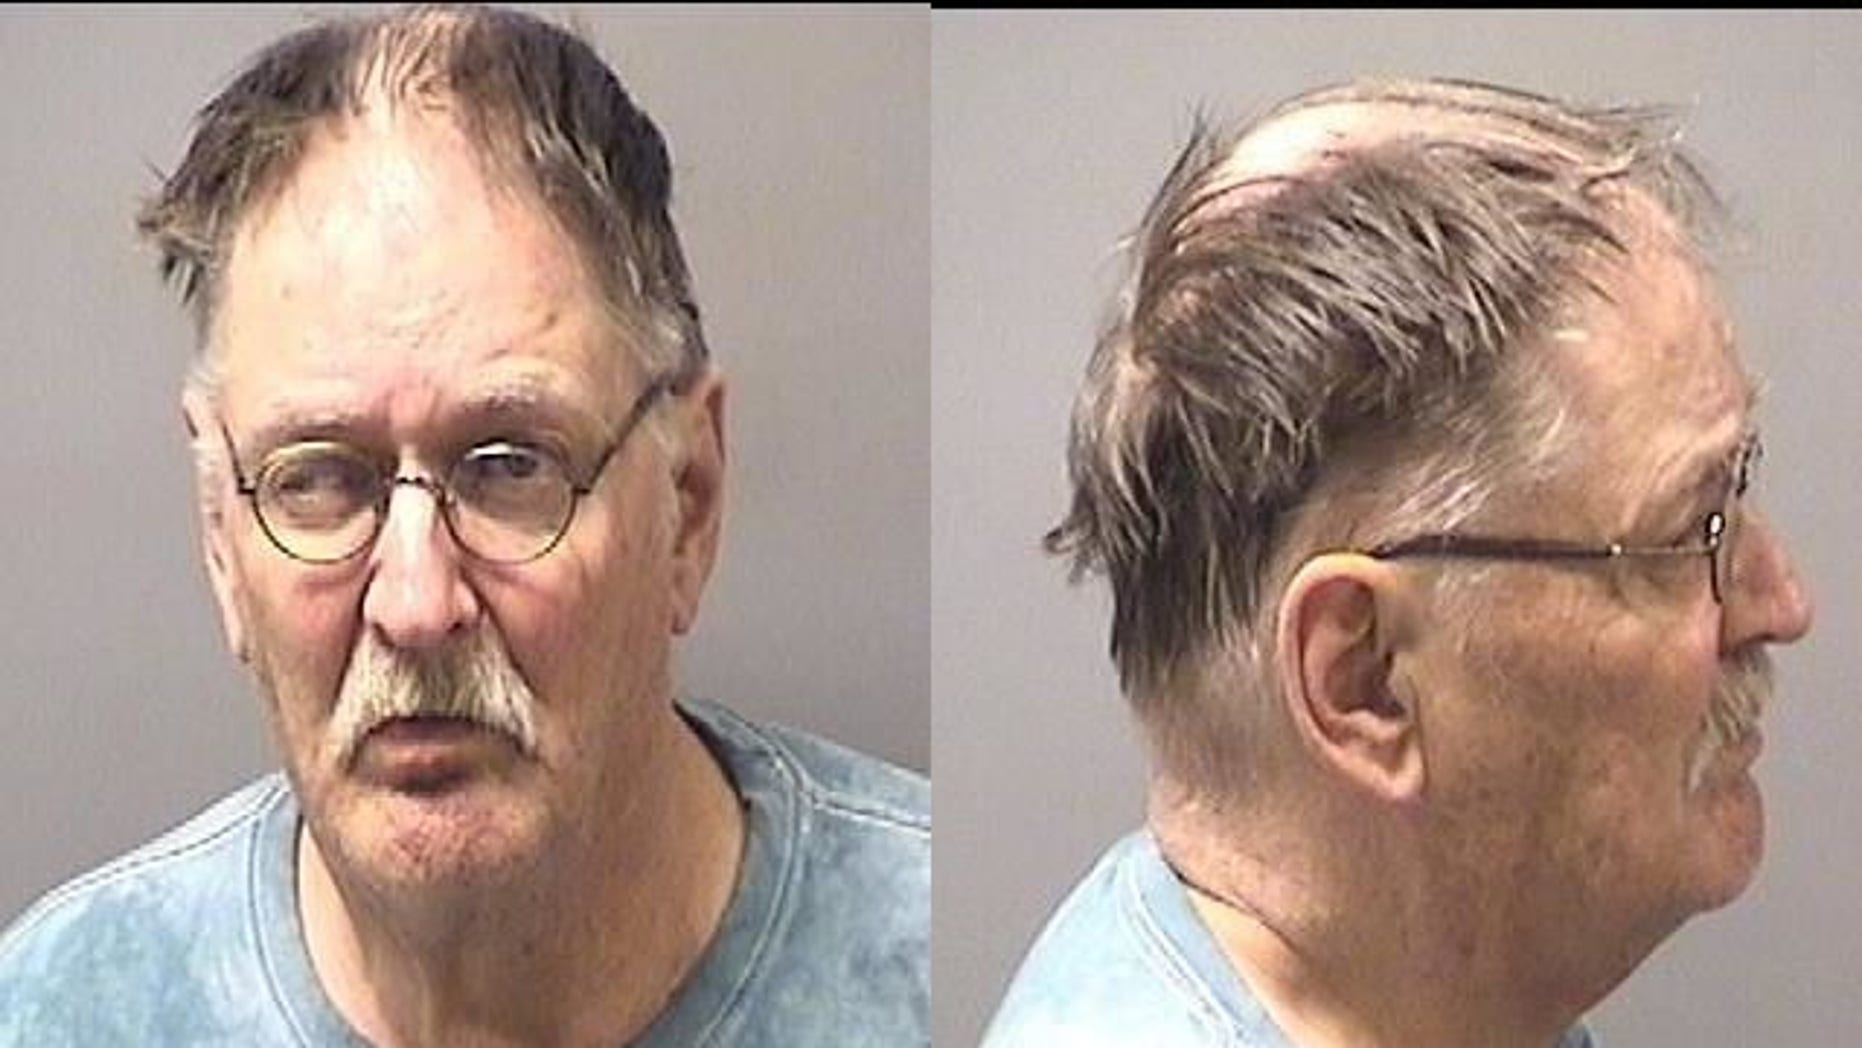 Thomas Small was arrested Thursday in connection with the murder of his wife, Diane, whose body was found 37 years ago near a bridge in Coles County, Ill.